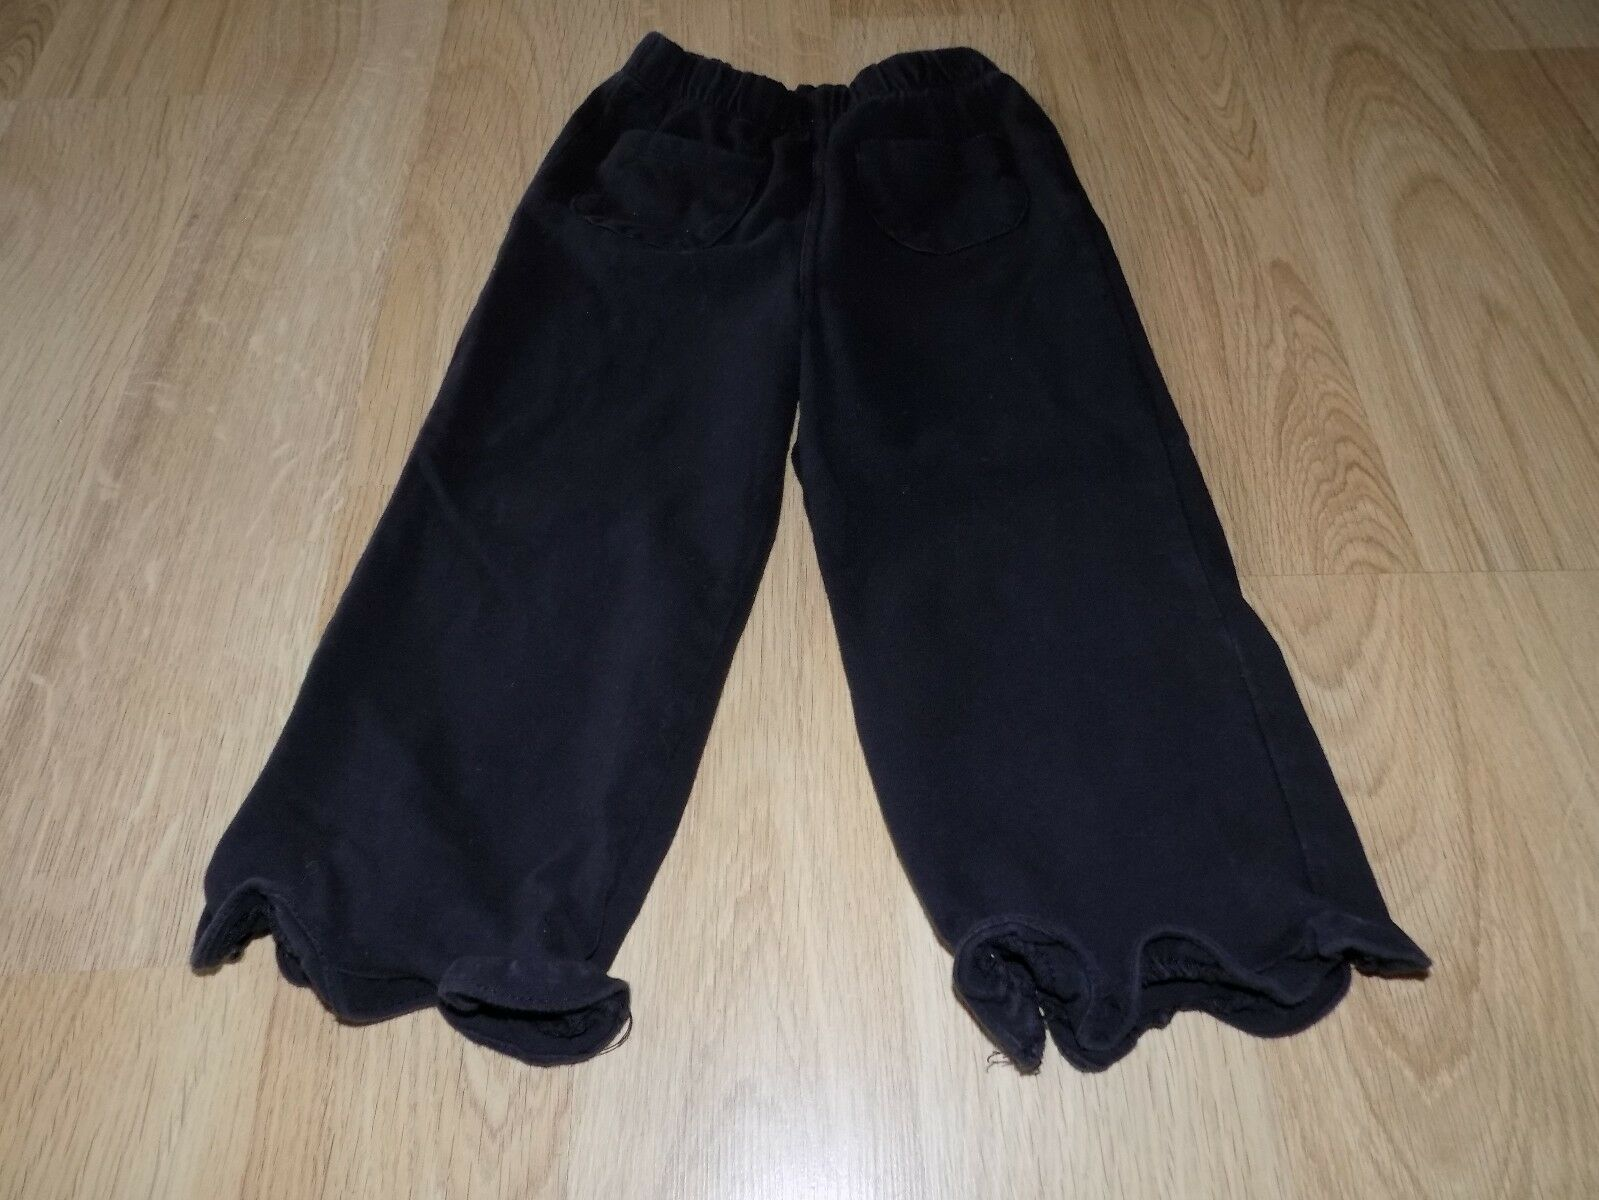 Primary image for Baby Girls Size 24 Months Faded Glory Solid Black Comfy Casual Lounge Pants GUC